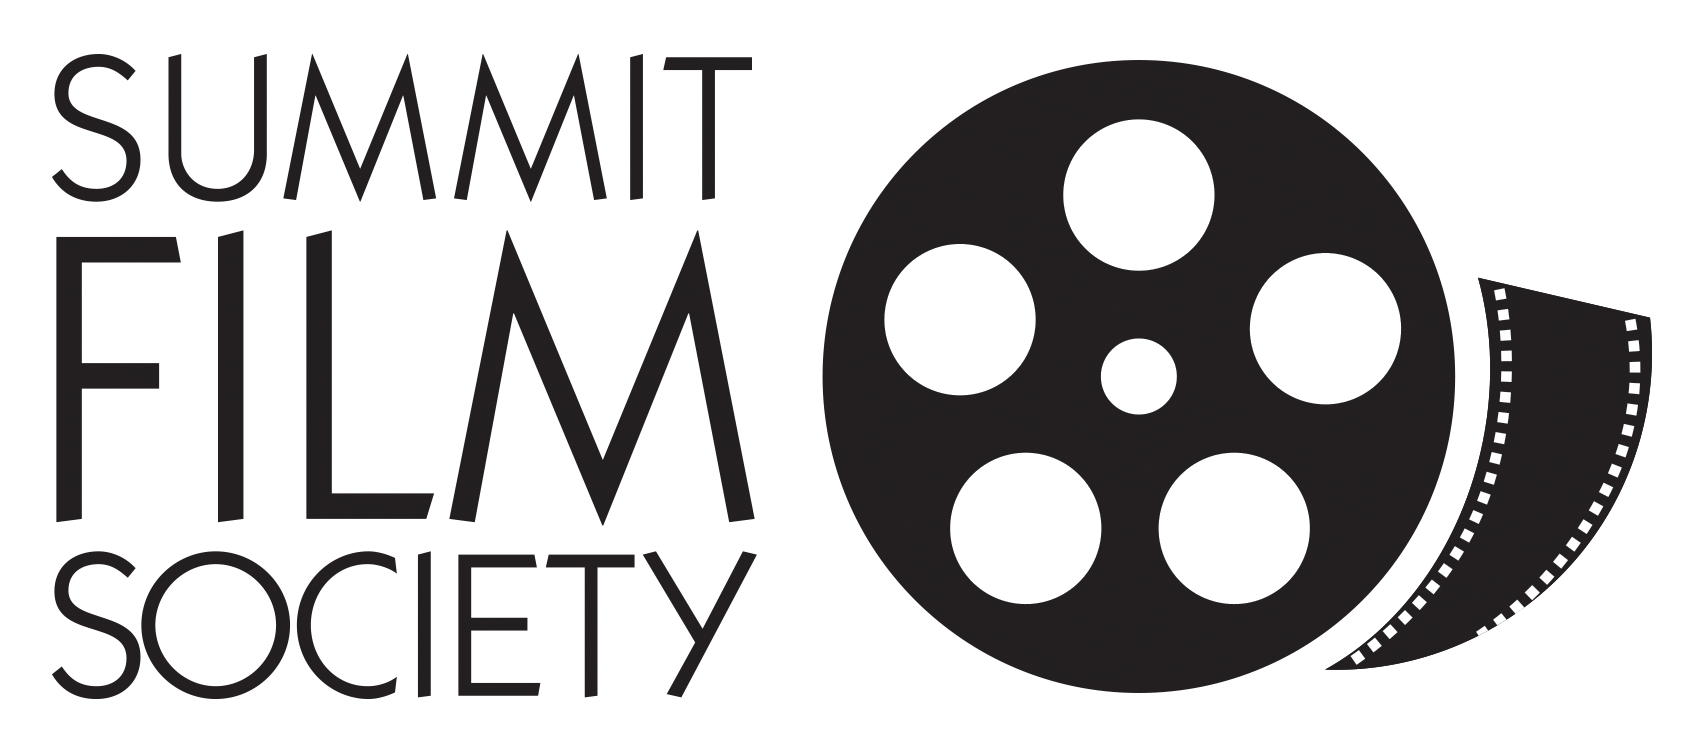 Summit Film Society - Get involved, learn more about our Film Society events.